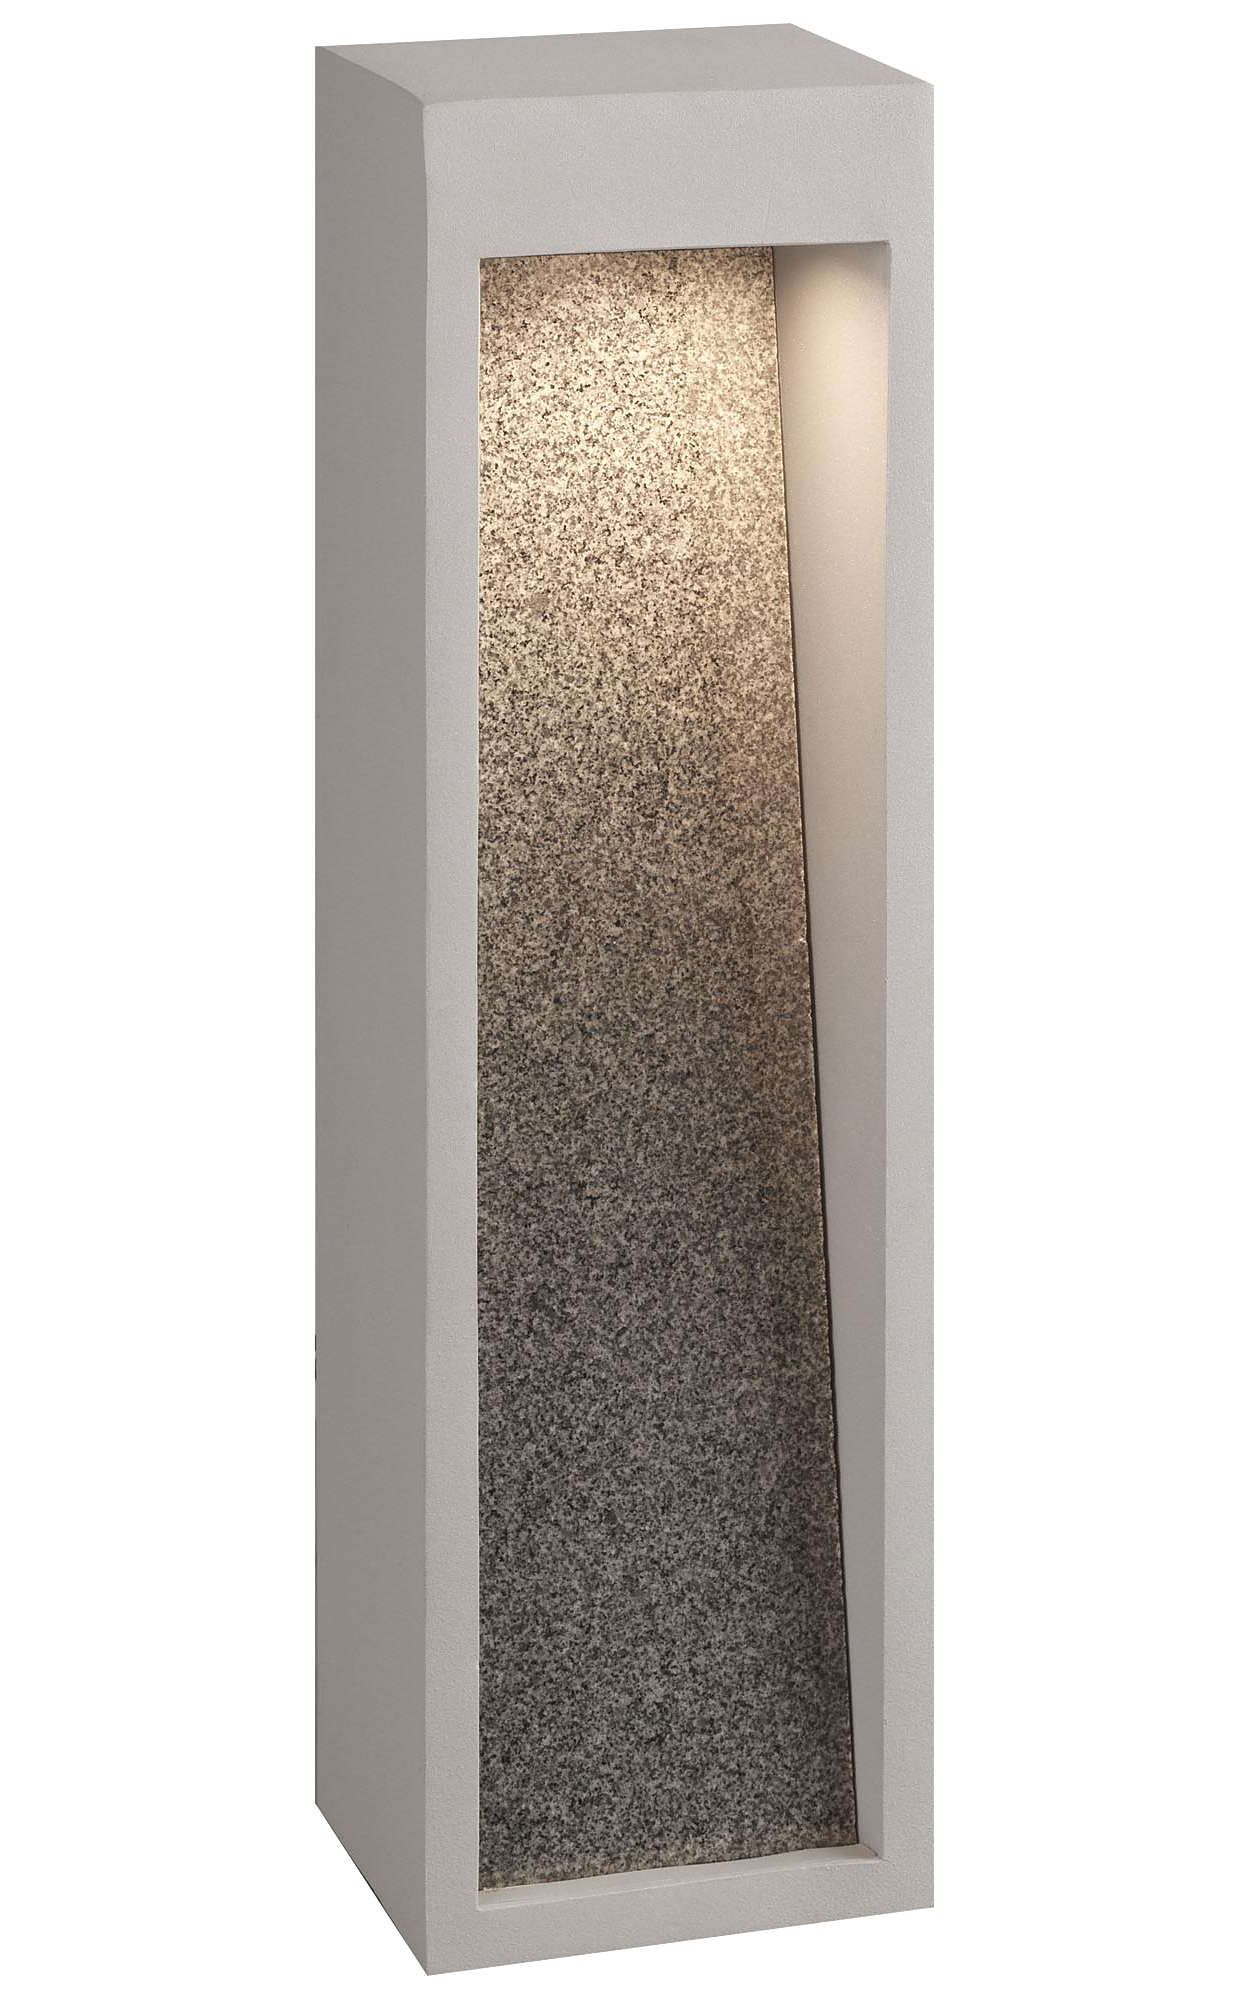 Starbeam LED outdoor wall lantern, Graphite finish